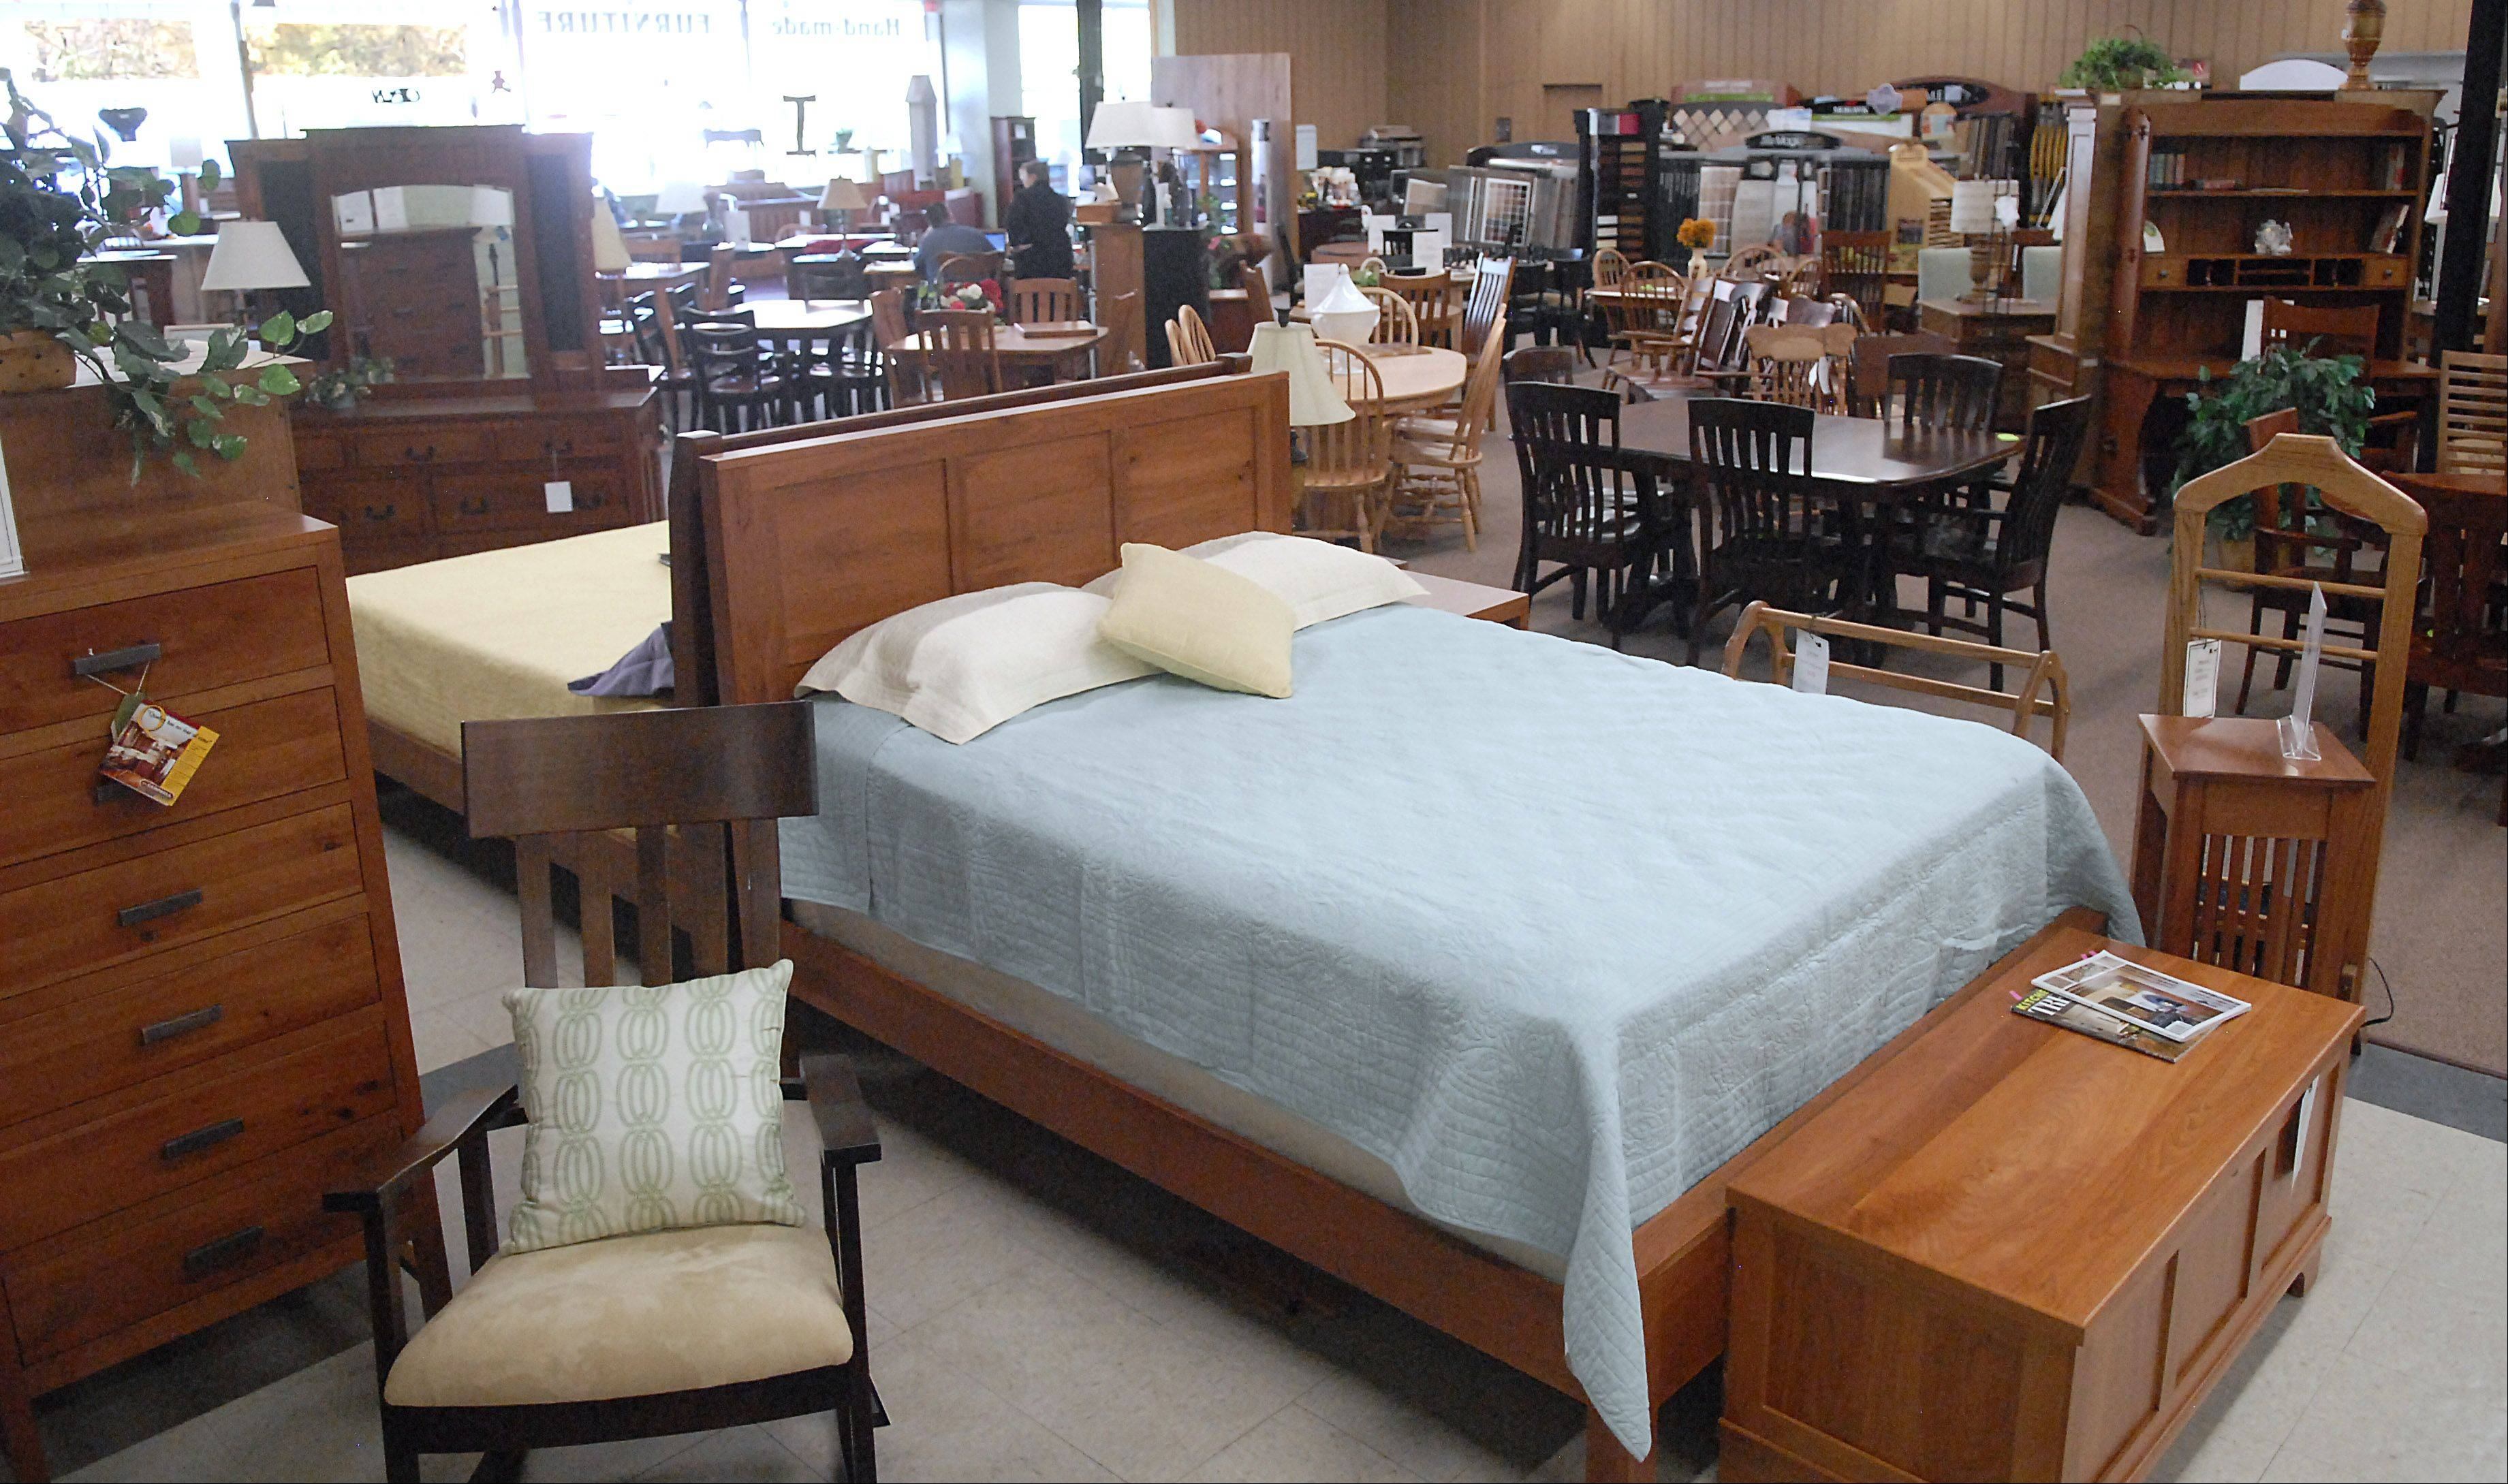 Part of the bedroom furniture collection at Burress Amish Furniture located 663 Villa St. in Elgin.